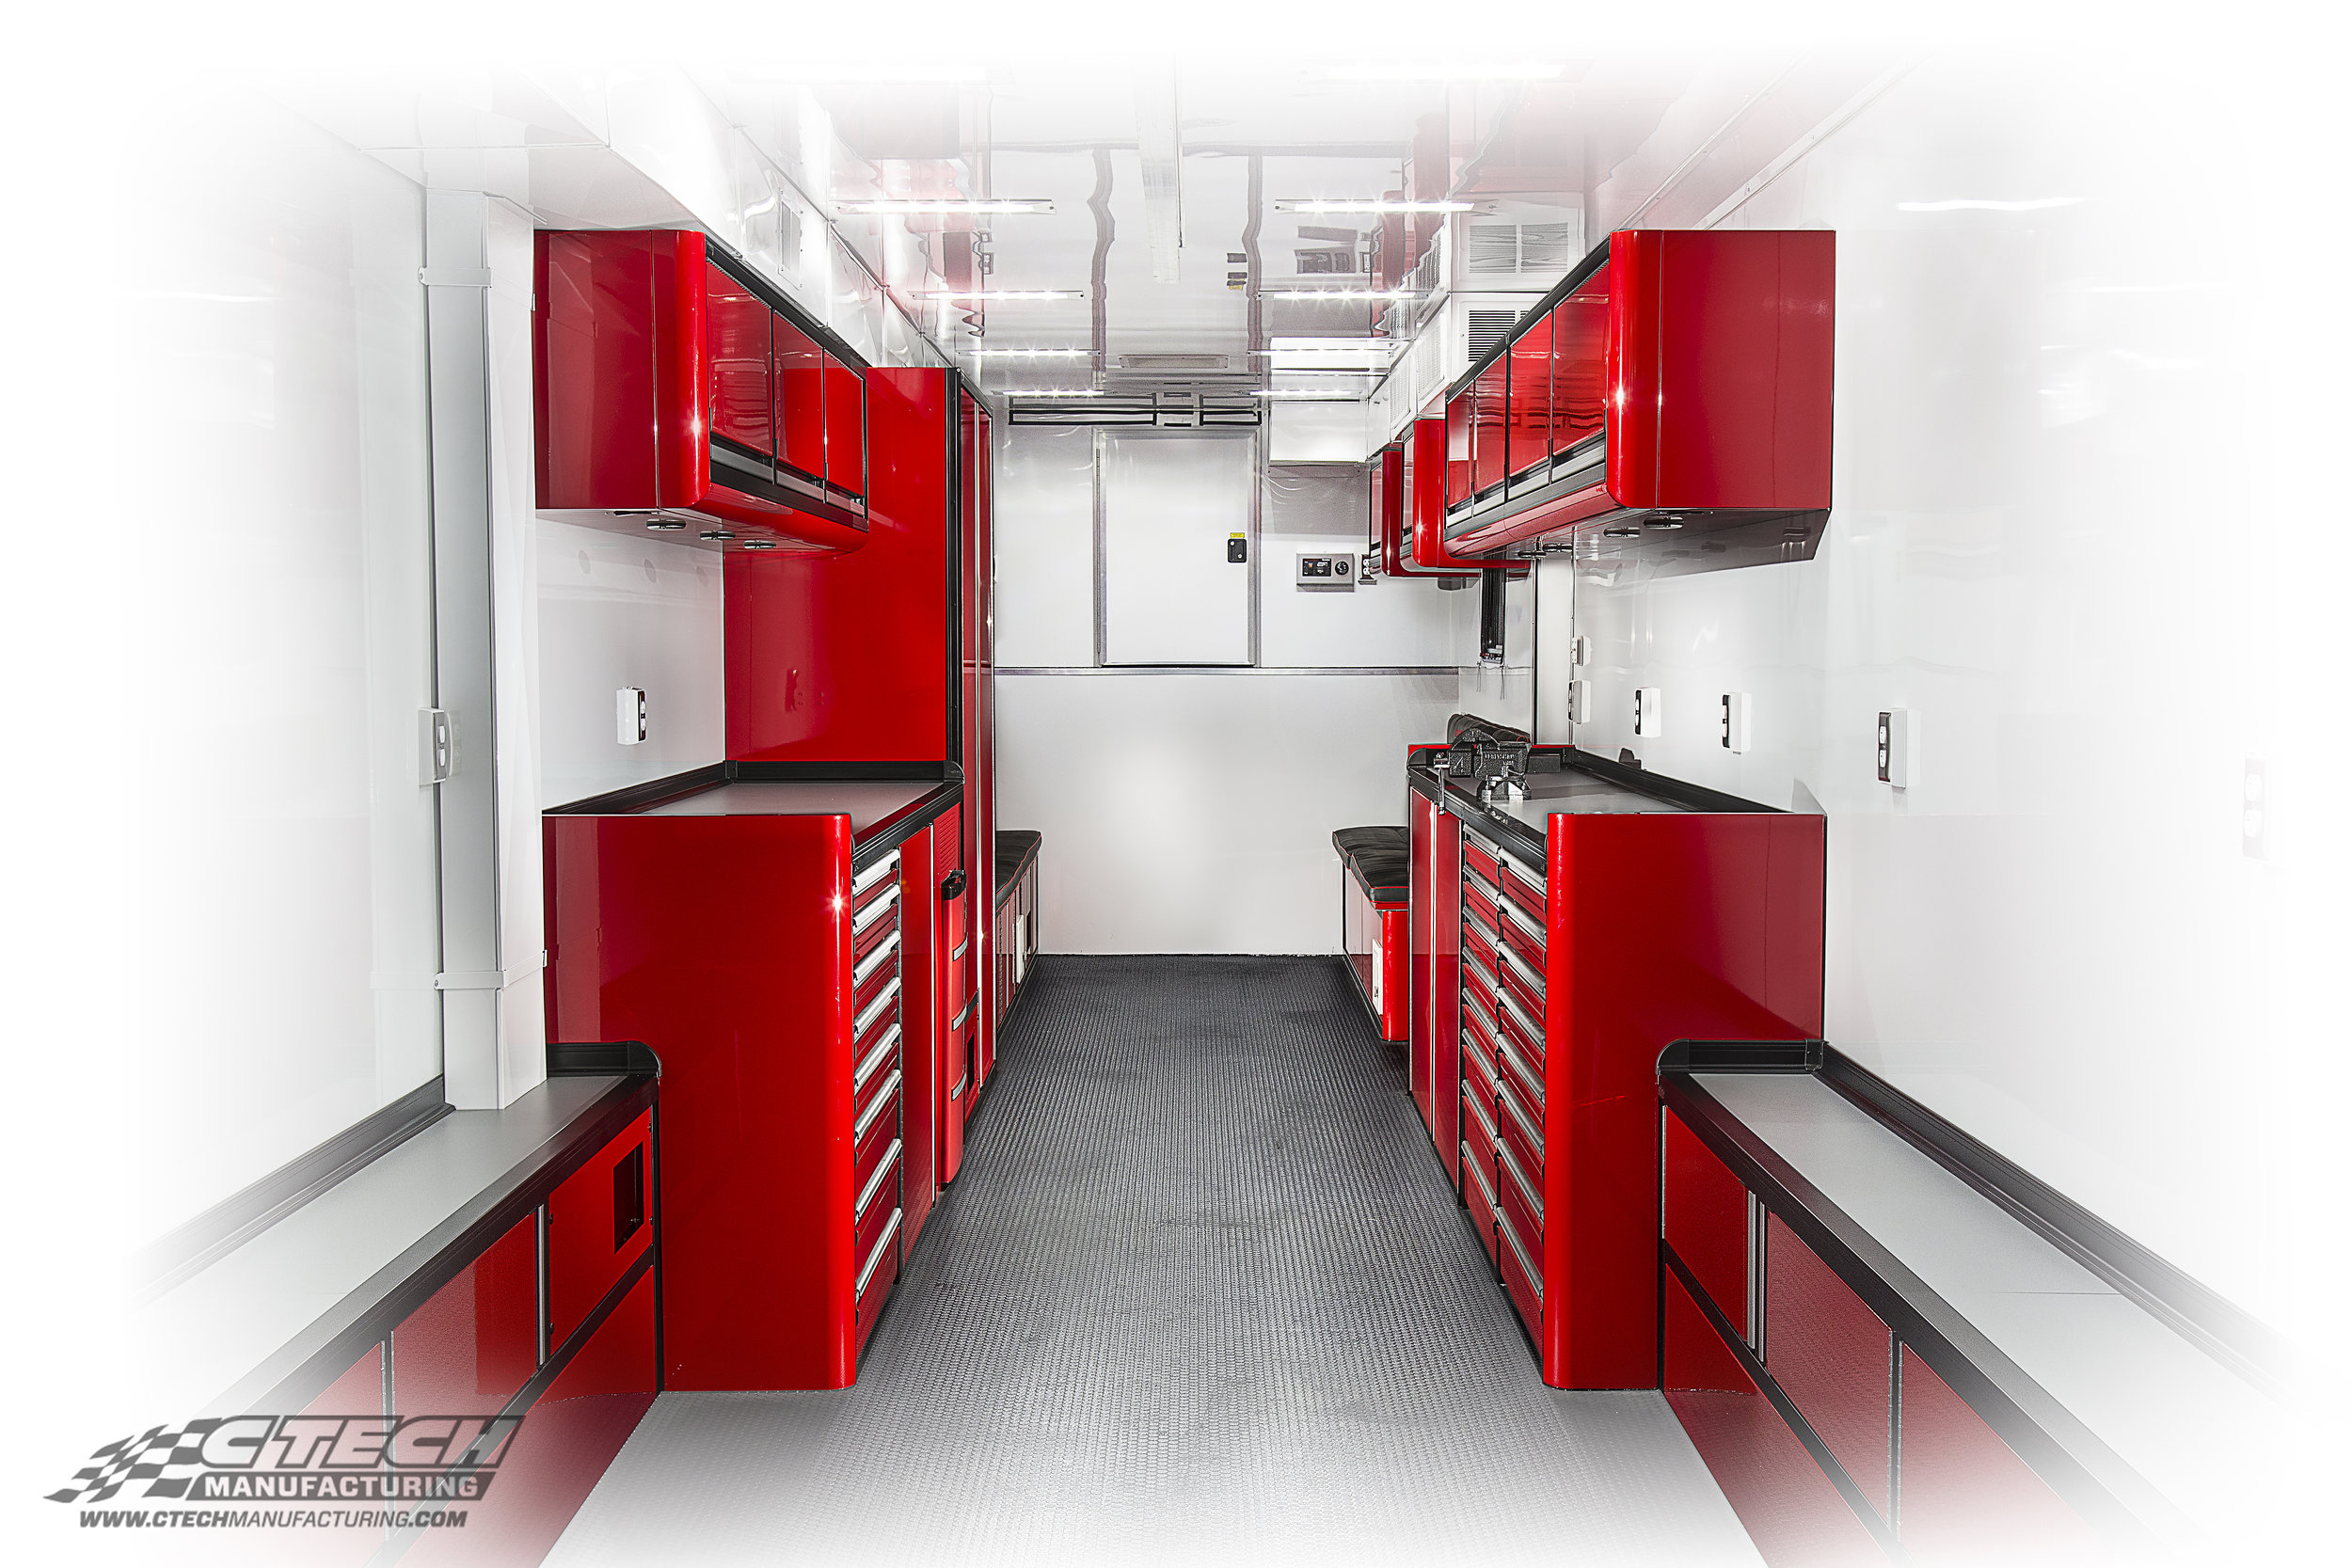 Ritchie Motorsports CTECH Red Custom Motorsport Trailer Cabinets